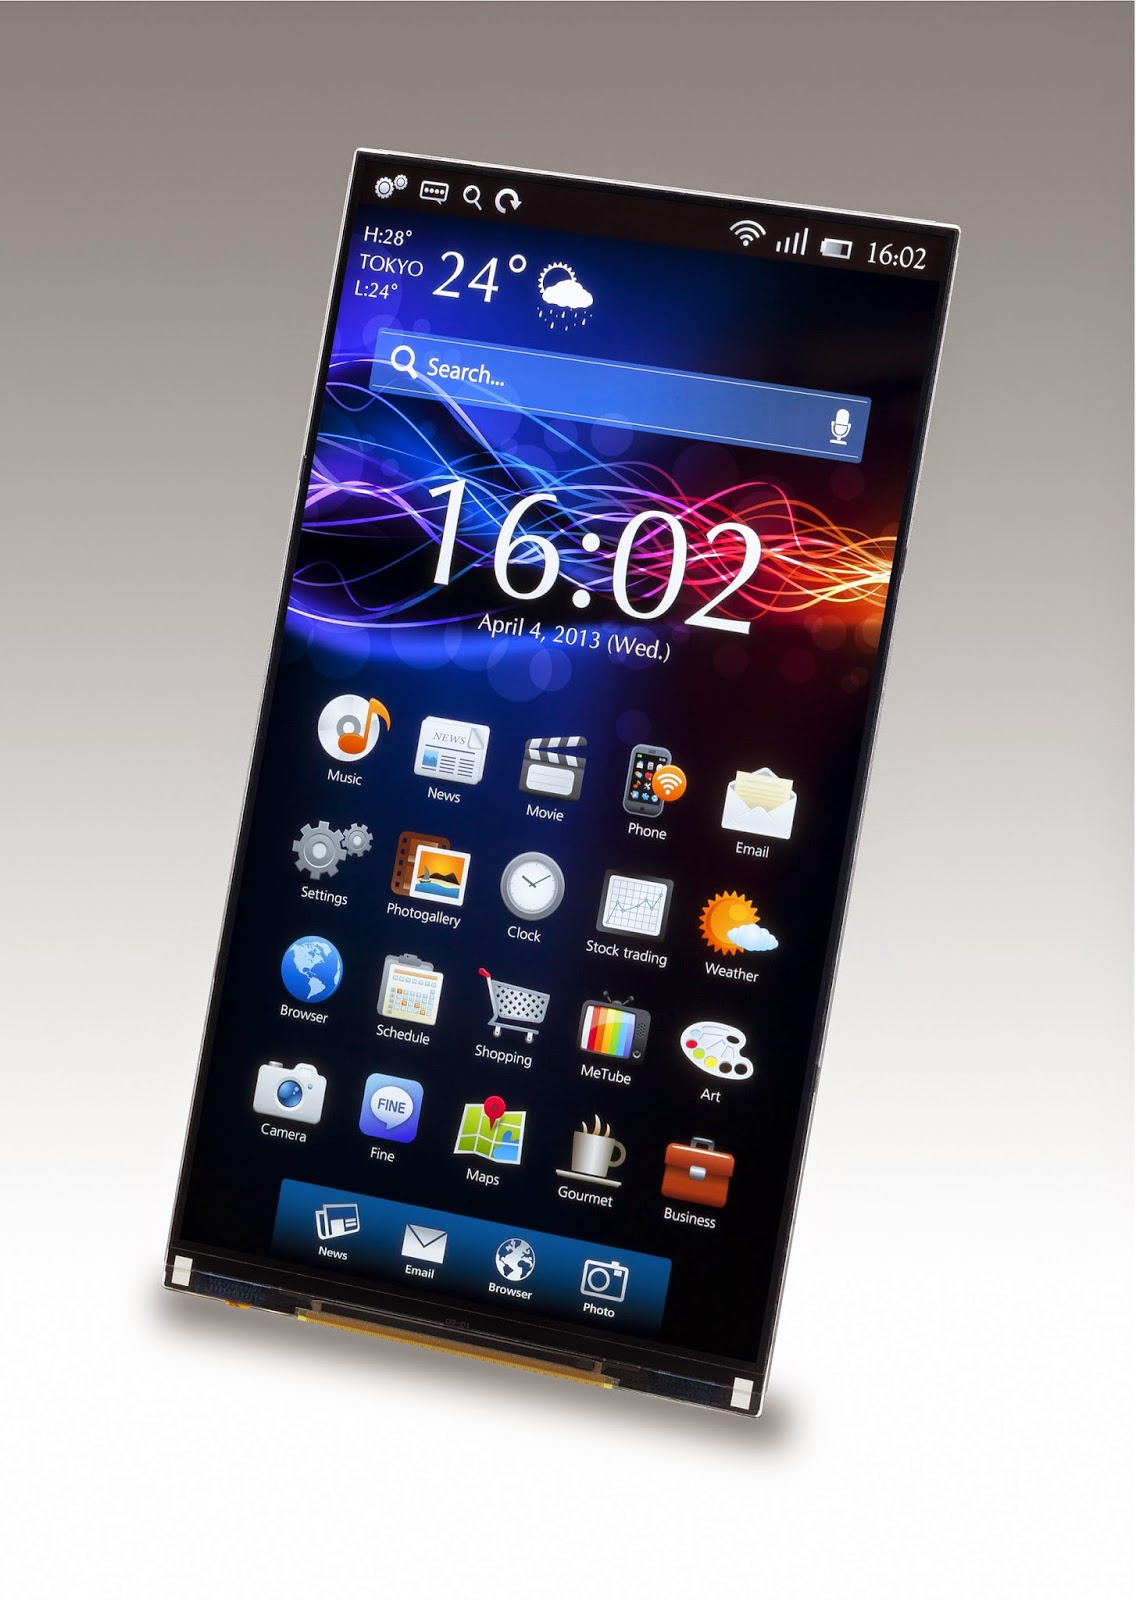 z4 best smartphone sony xperia, sony xperia specifications z4, the current best smartphone 2015